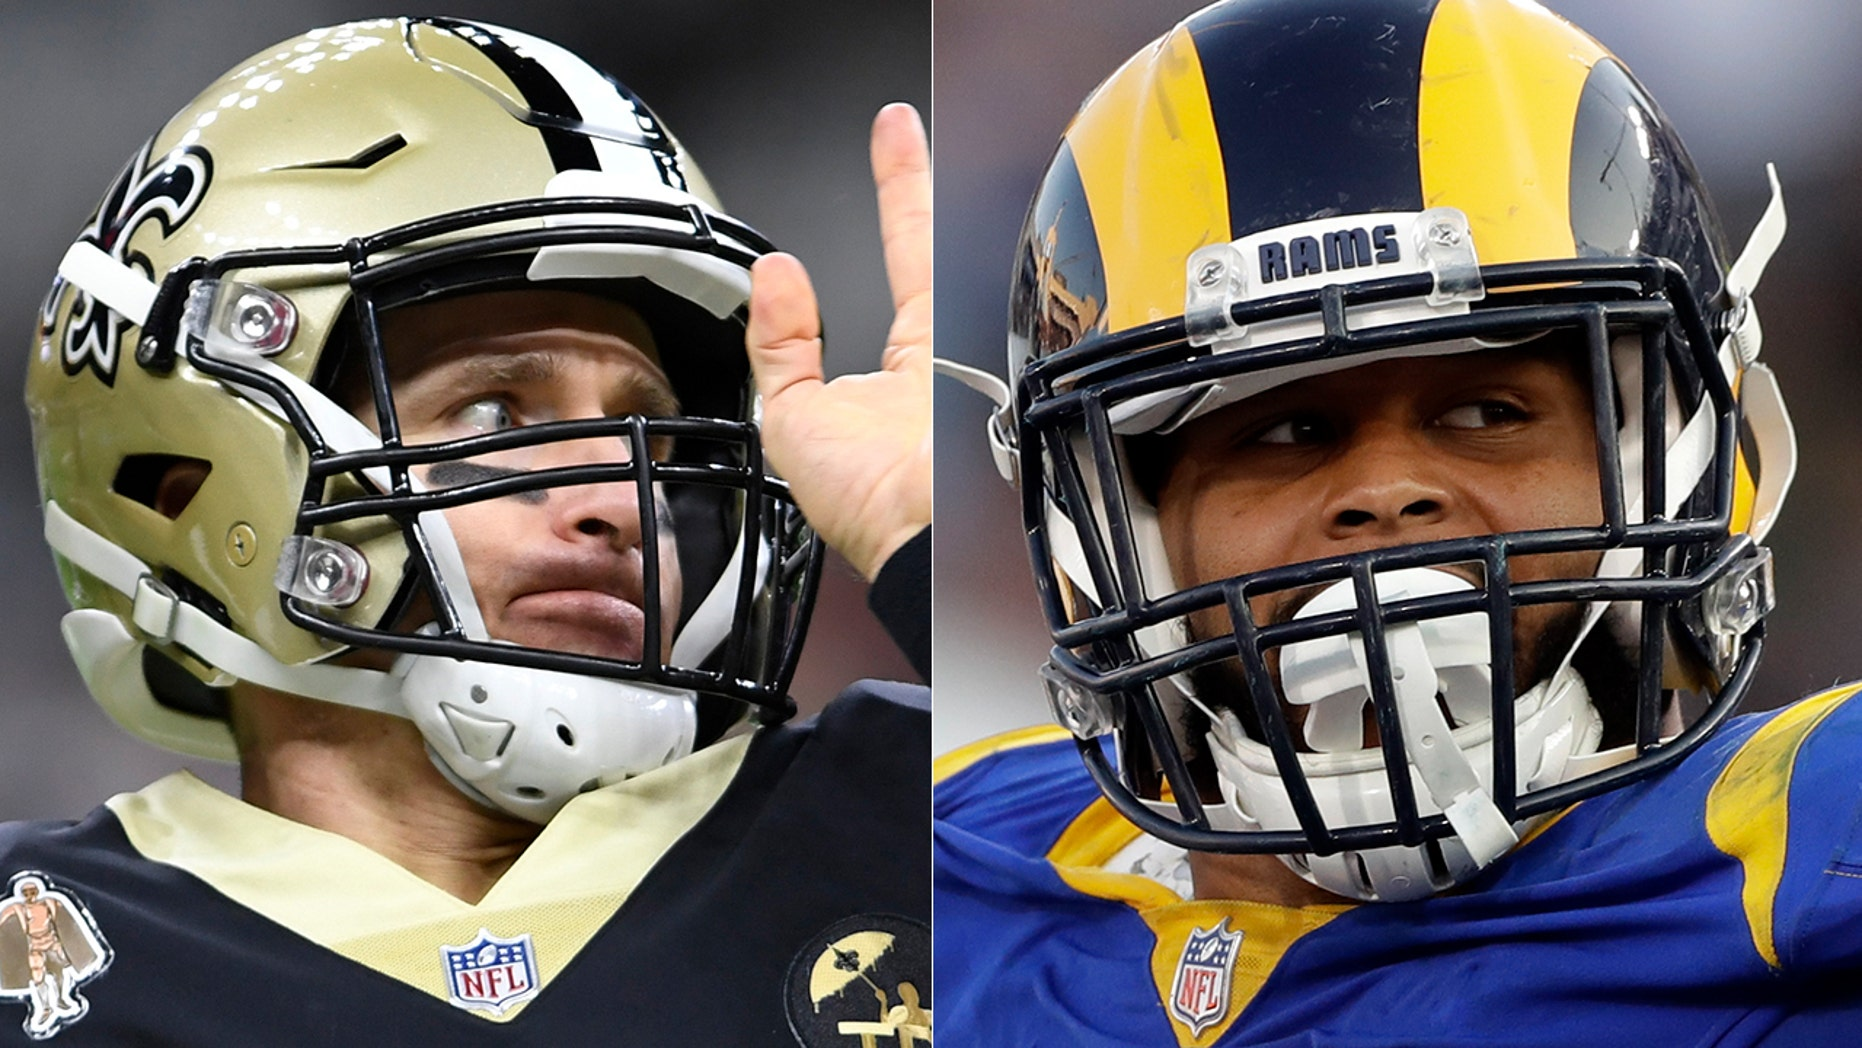 Drew Brees will have to avoid the Aaron Donald-led Rams defense in their matchup Sunday.